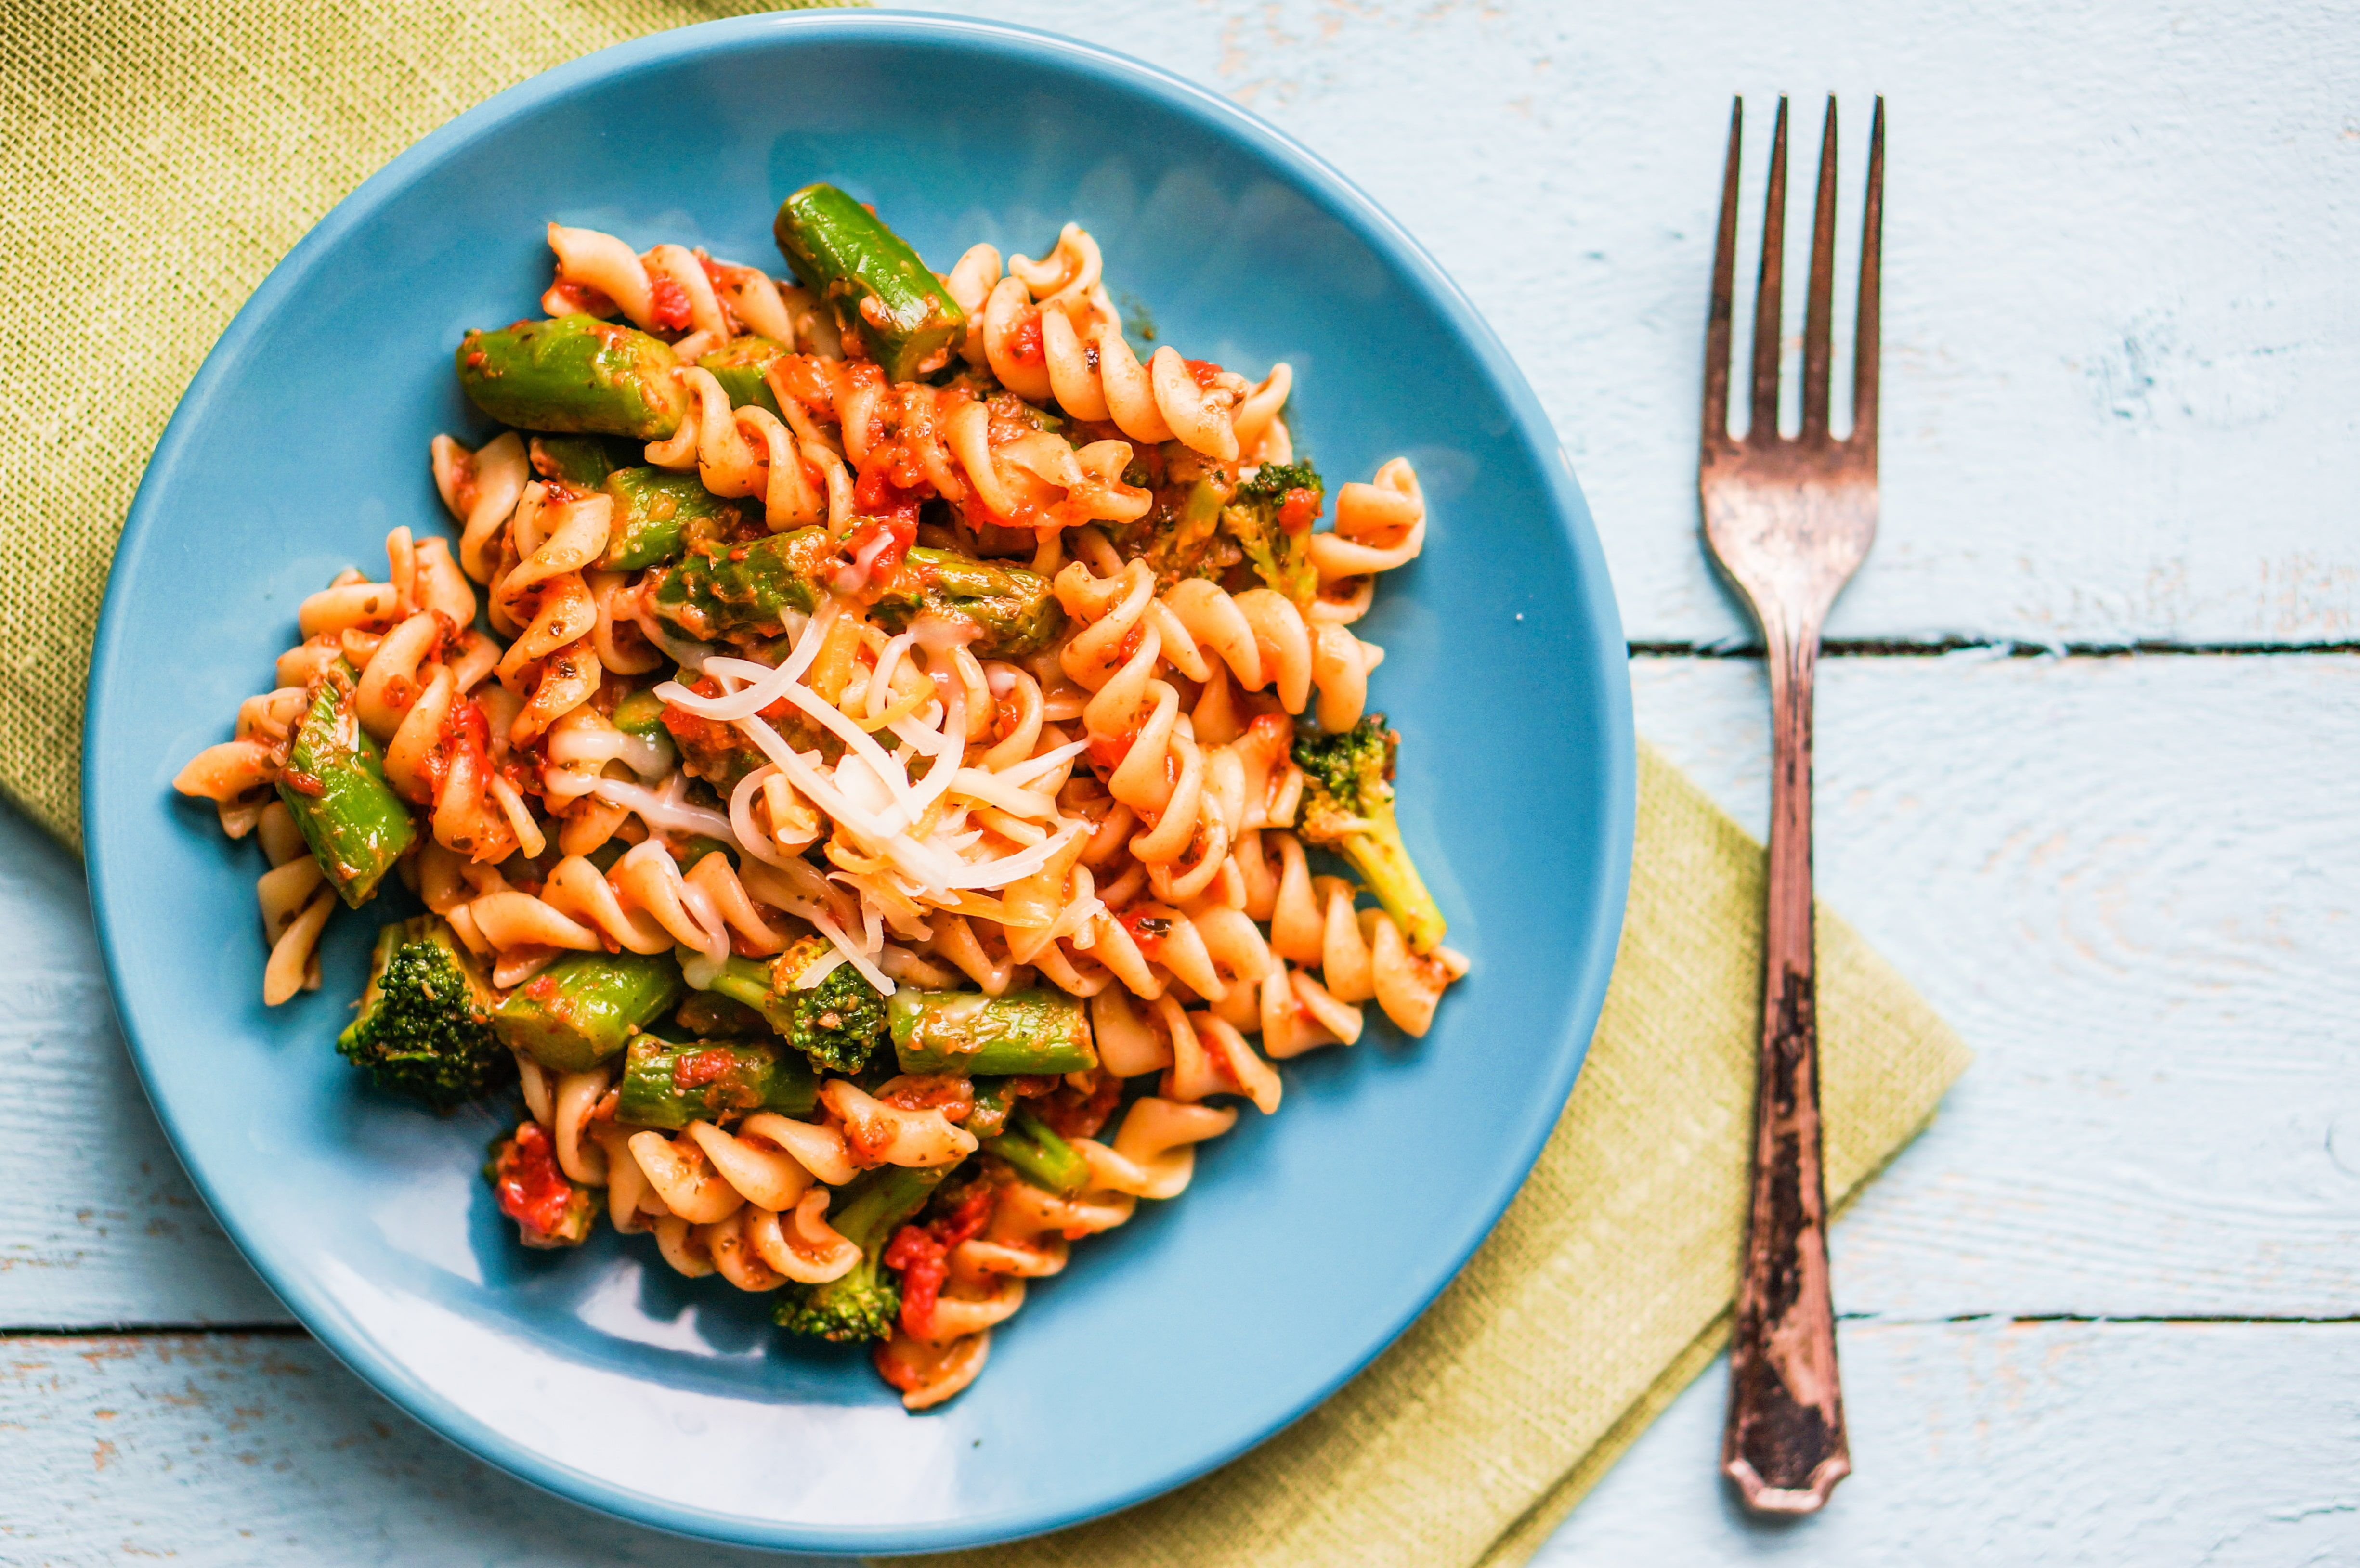 This super simple recipe for pasta with asparagus comes together in no time. You can leave the sauce to simmer while you multitask.